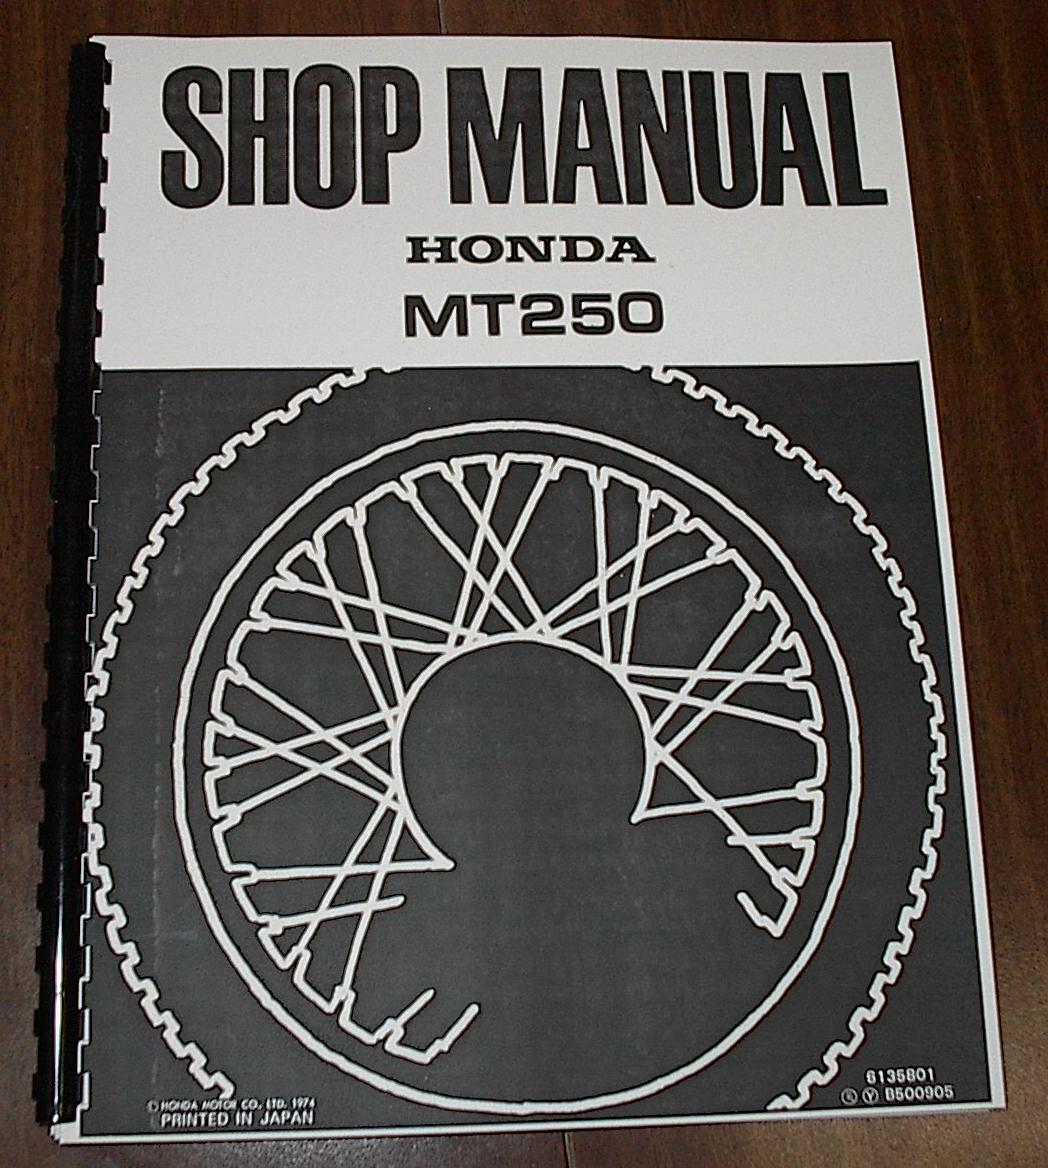 Honda MT250 Elsinore -- (1973) -- Shop Manual #6135801B500905  Professionally bound reproduction of the original with heavy card stock  cover.